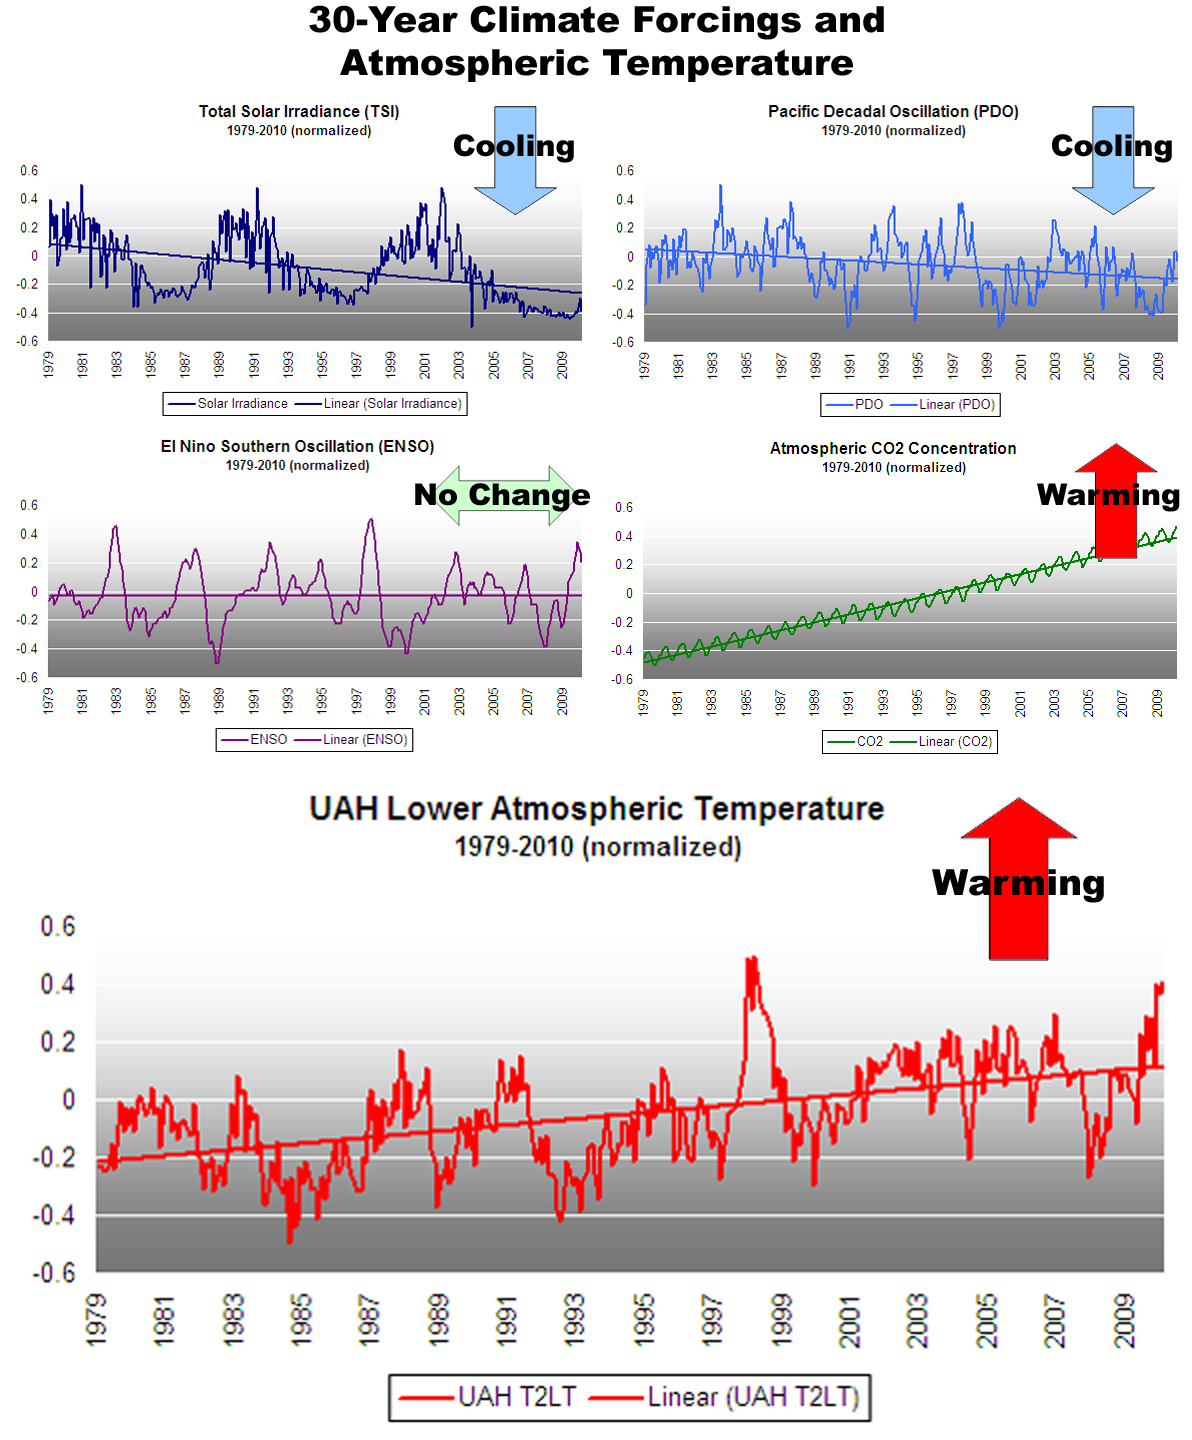 30-Year Climate Forcings and Lower Atmospheric Temperature